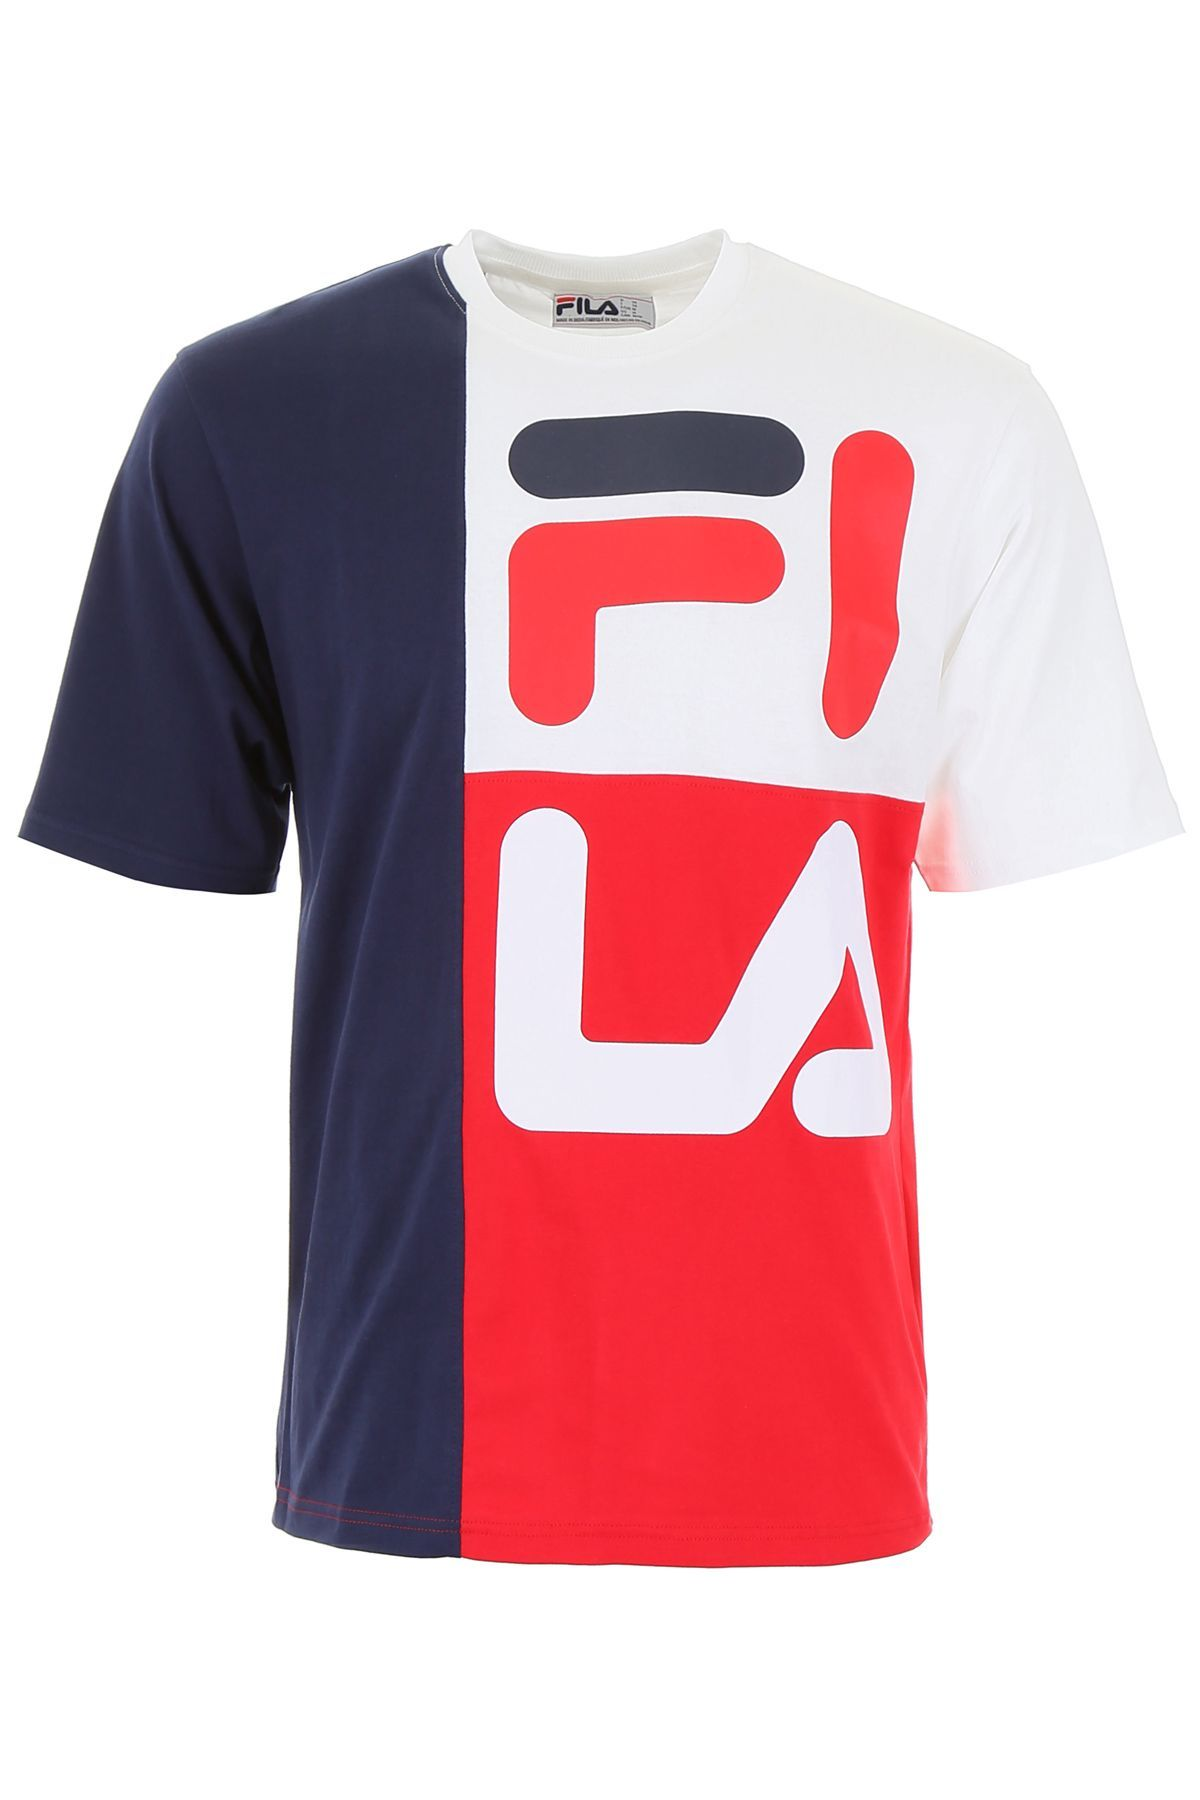 439a4c646b FILA INDO T-SHIRT. #fila #cloth | Fila in 2019 | Shirts, Clothes ...